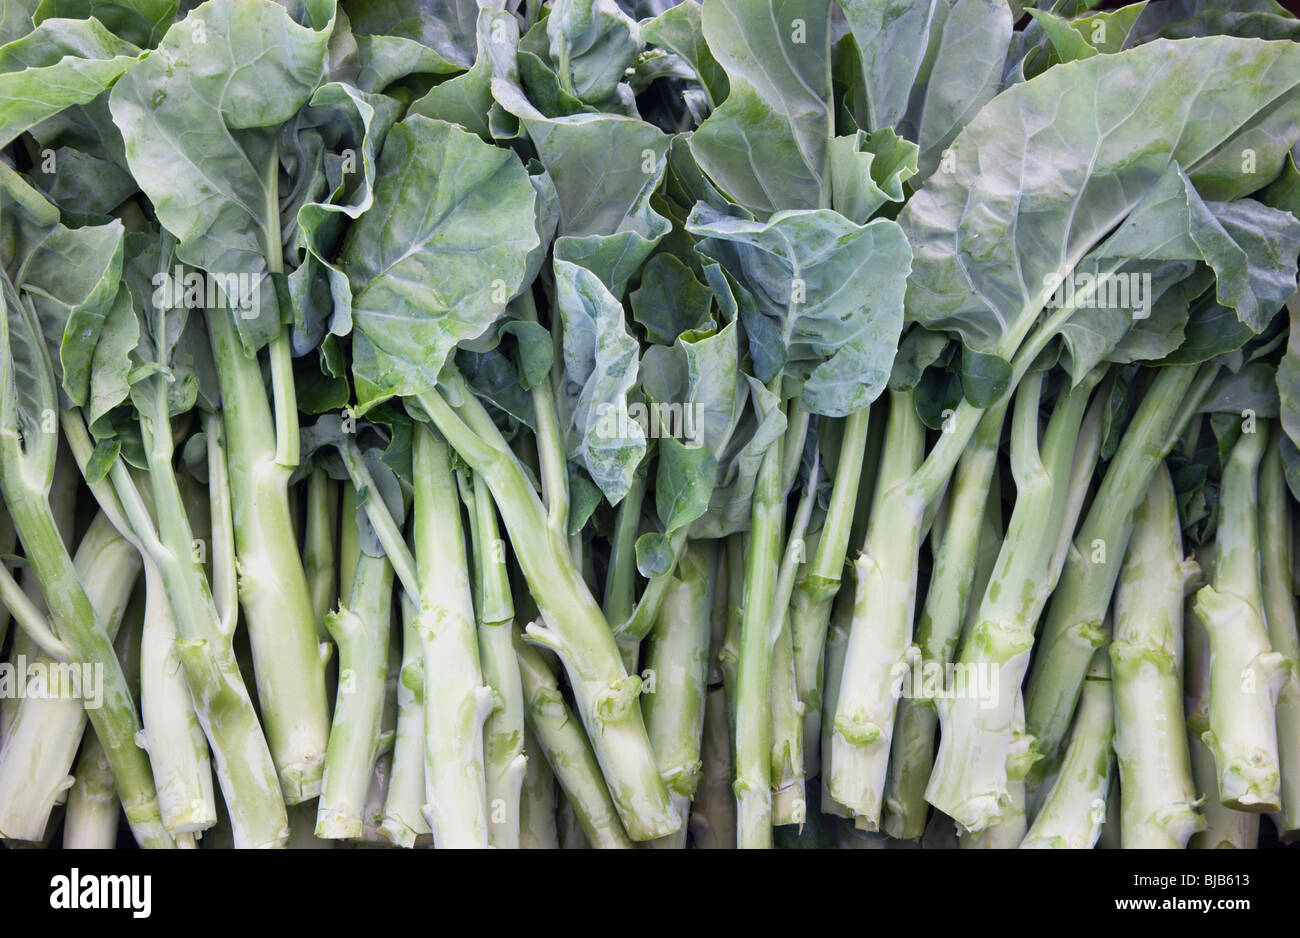 Gai Lan, légumes chinois 'Brassica oleracea' . Photo Stock